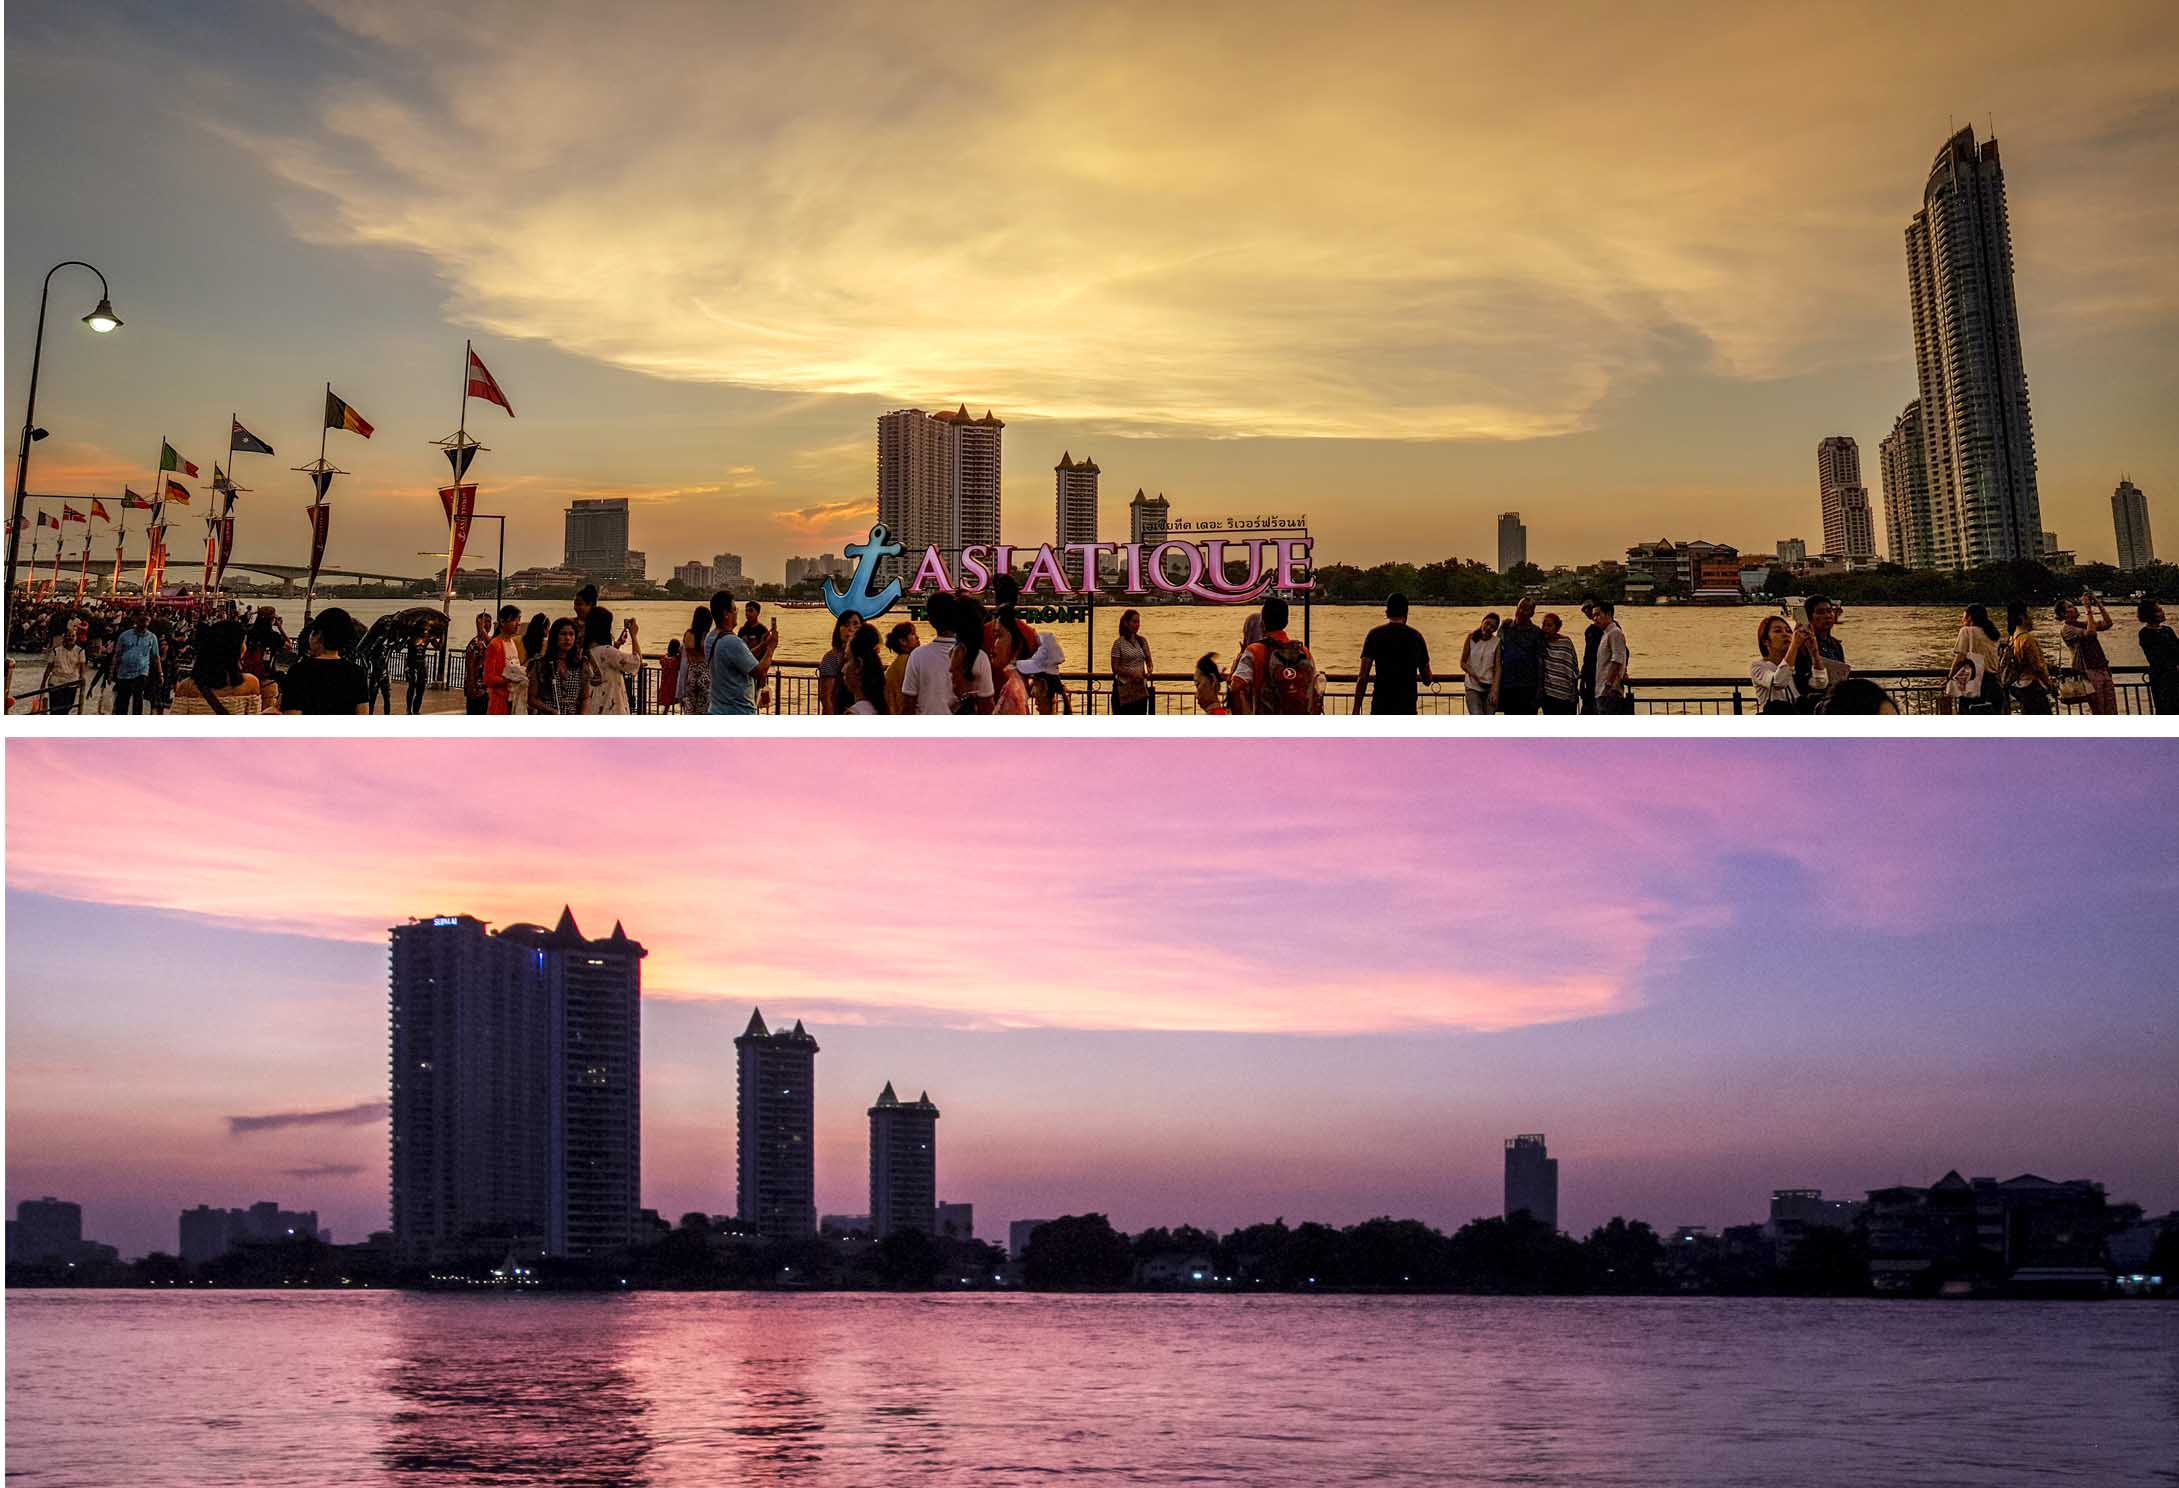 Sunset as seen from Asiatique Pier